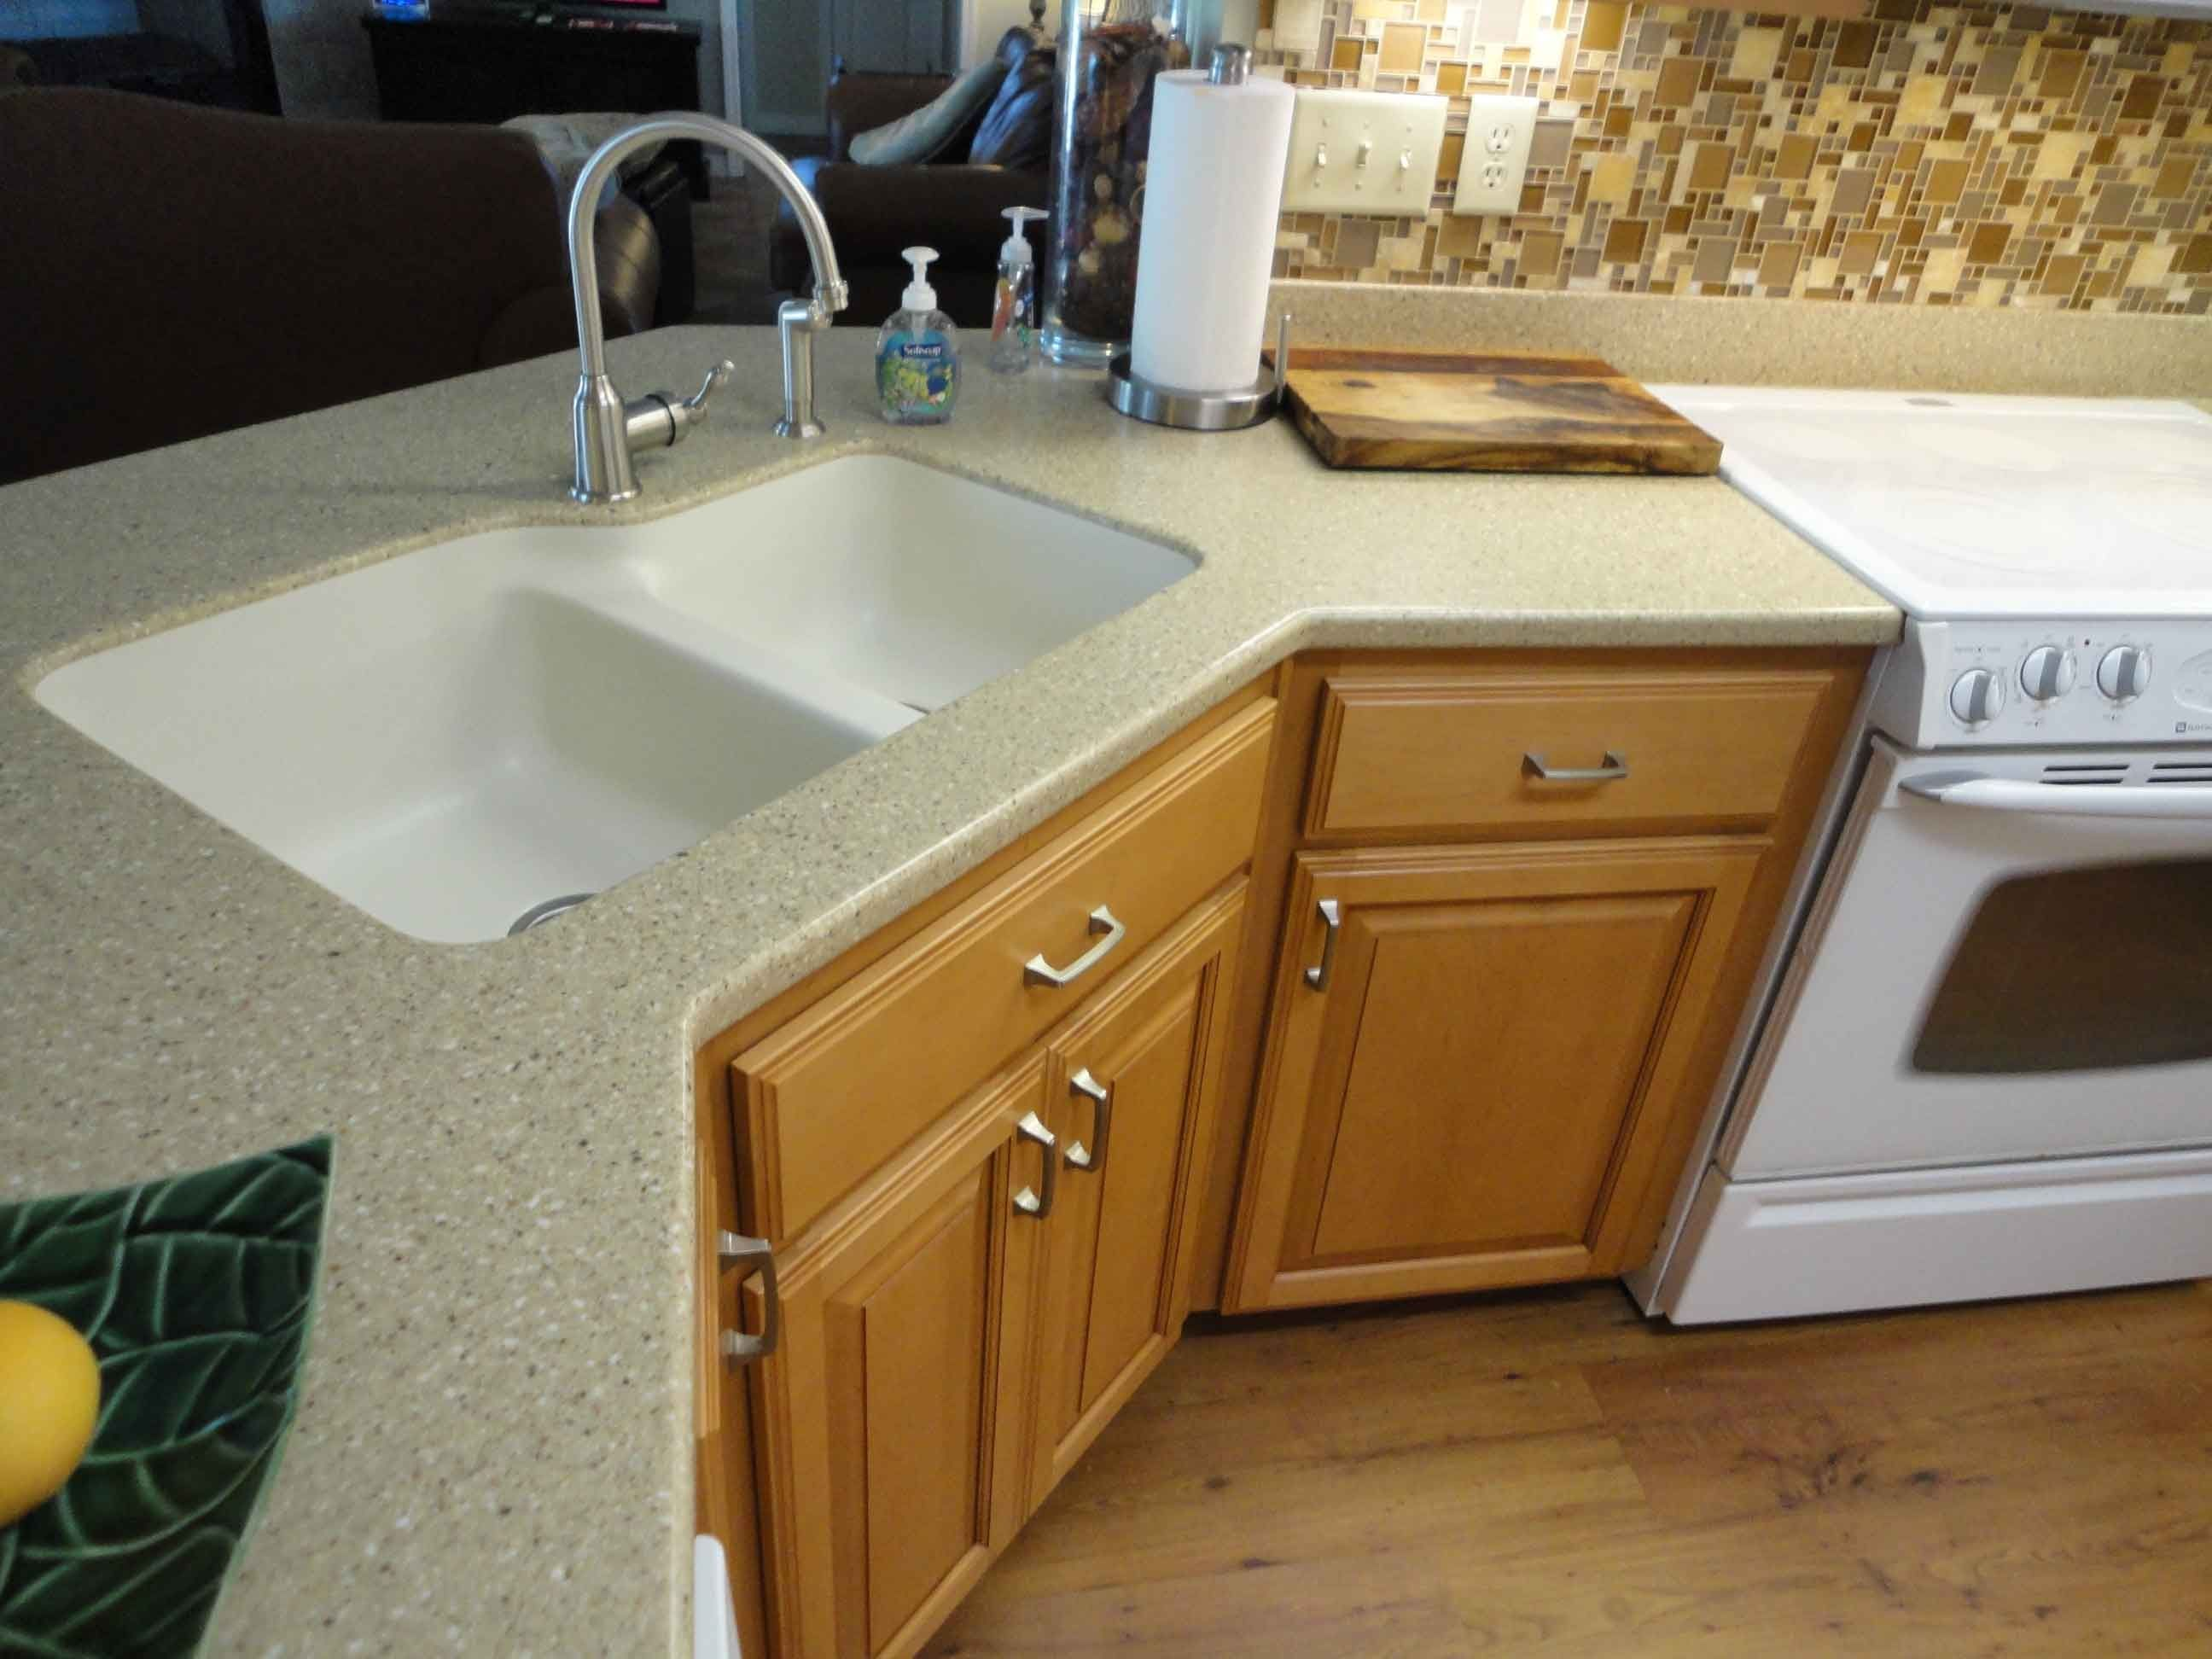 solid acrylic kitchen countertops solid acrylic kitchen countertops   http   navigator spb info      rh   pinterest com